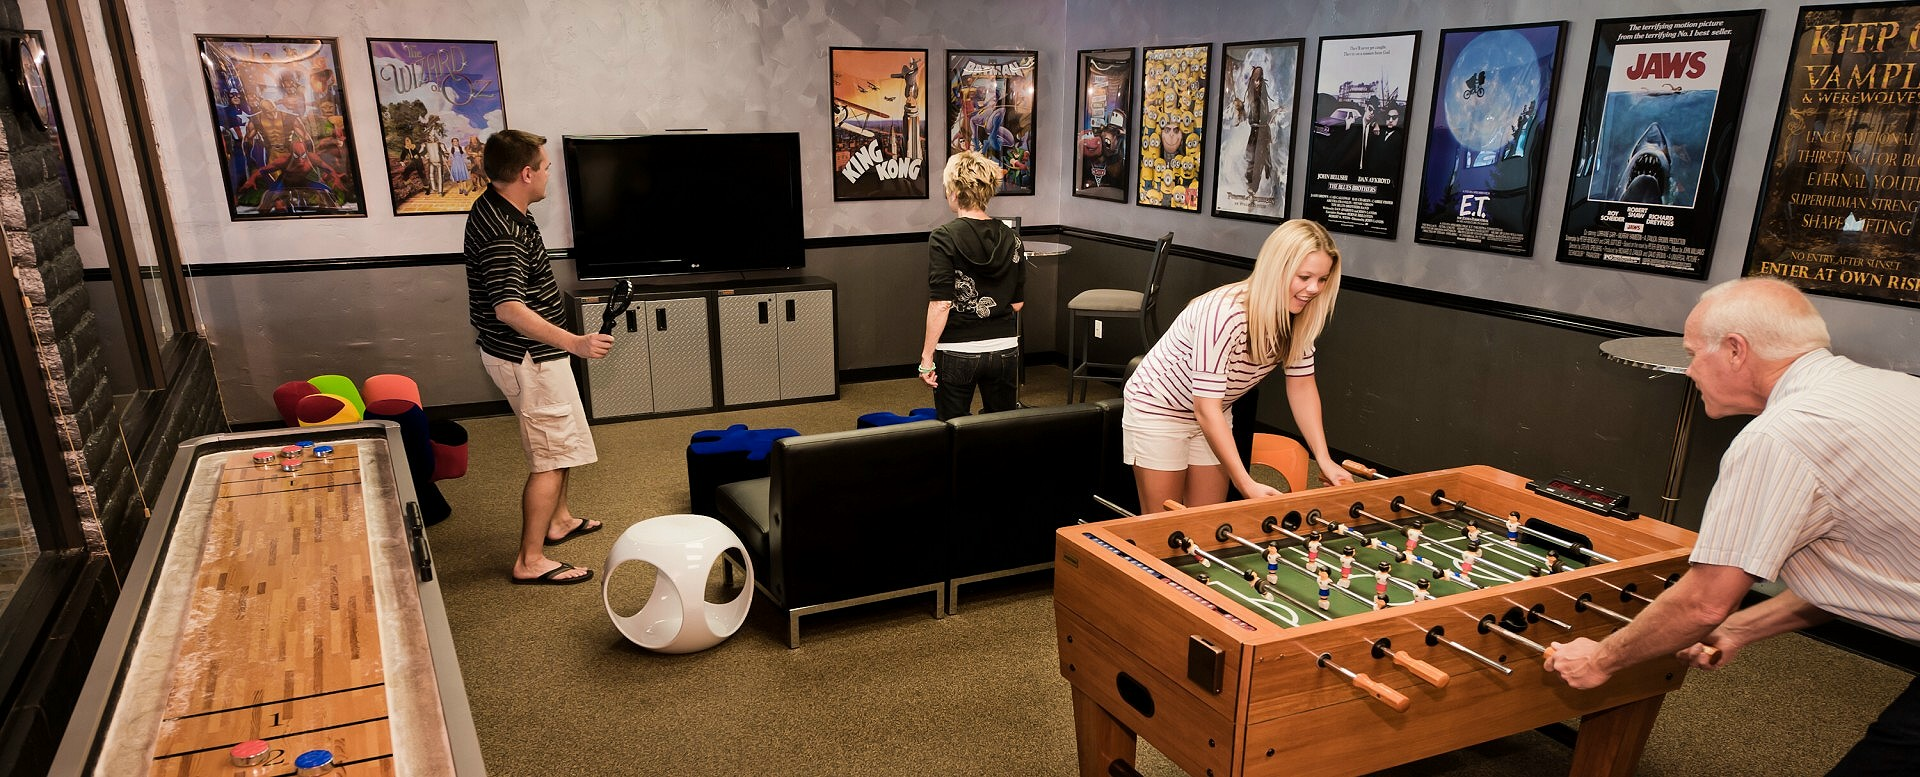 Best Western Plus Arroyo Roble Hotel - Gameroom